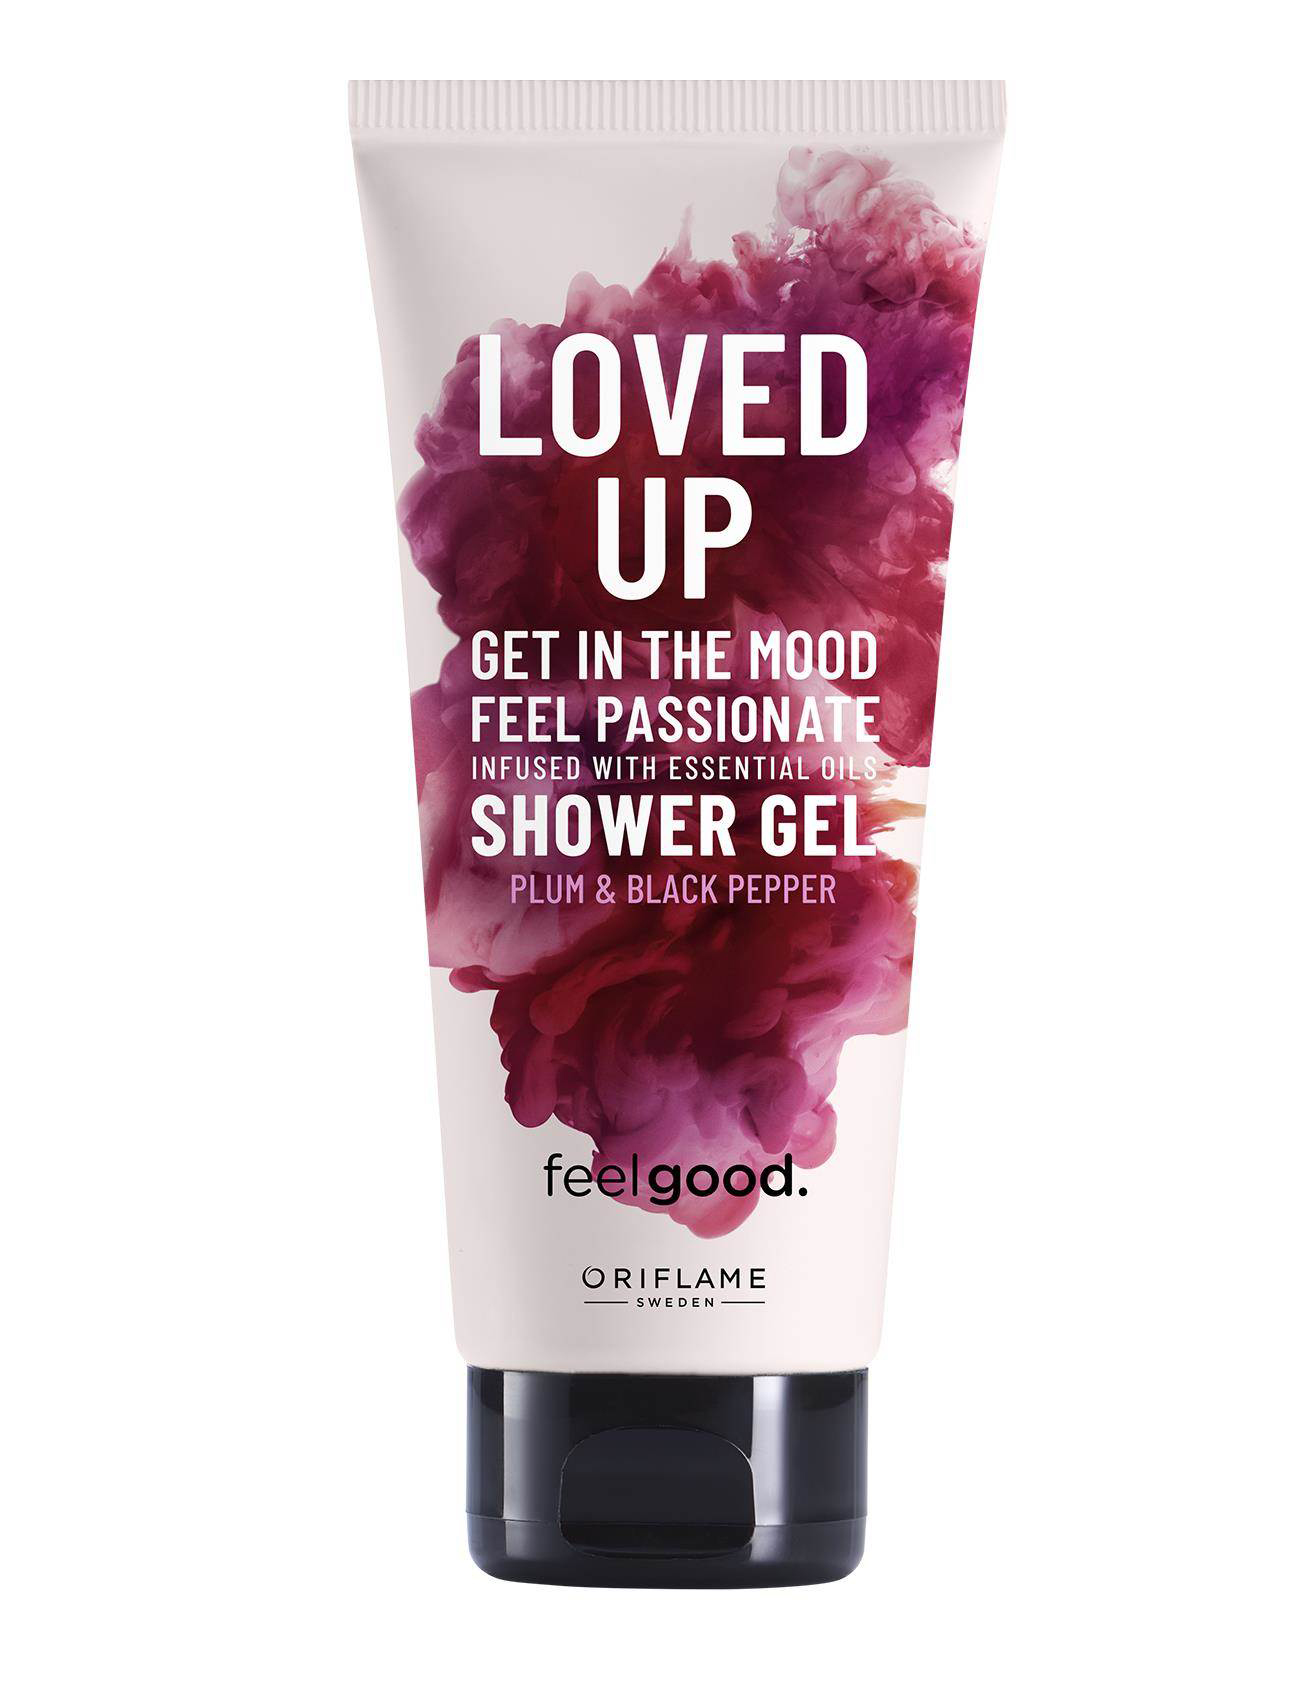 Oriflame Sweden Loved Up Feel Good Shower Gel  (200 ml)